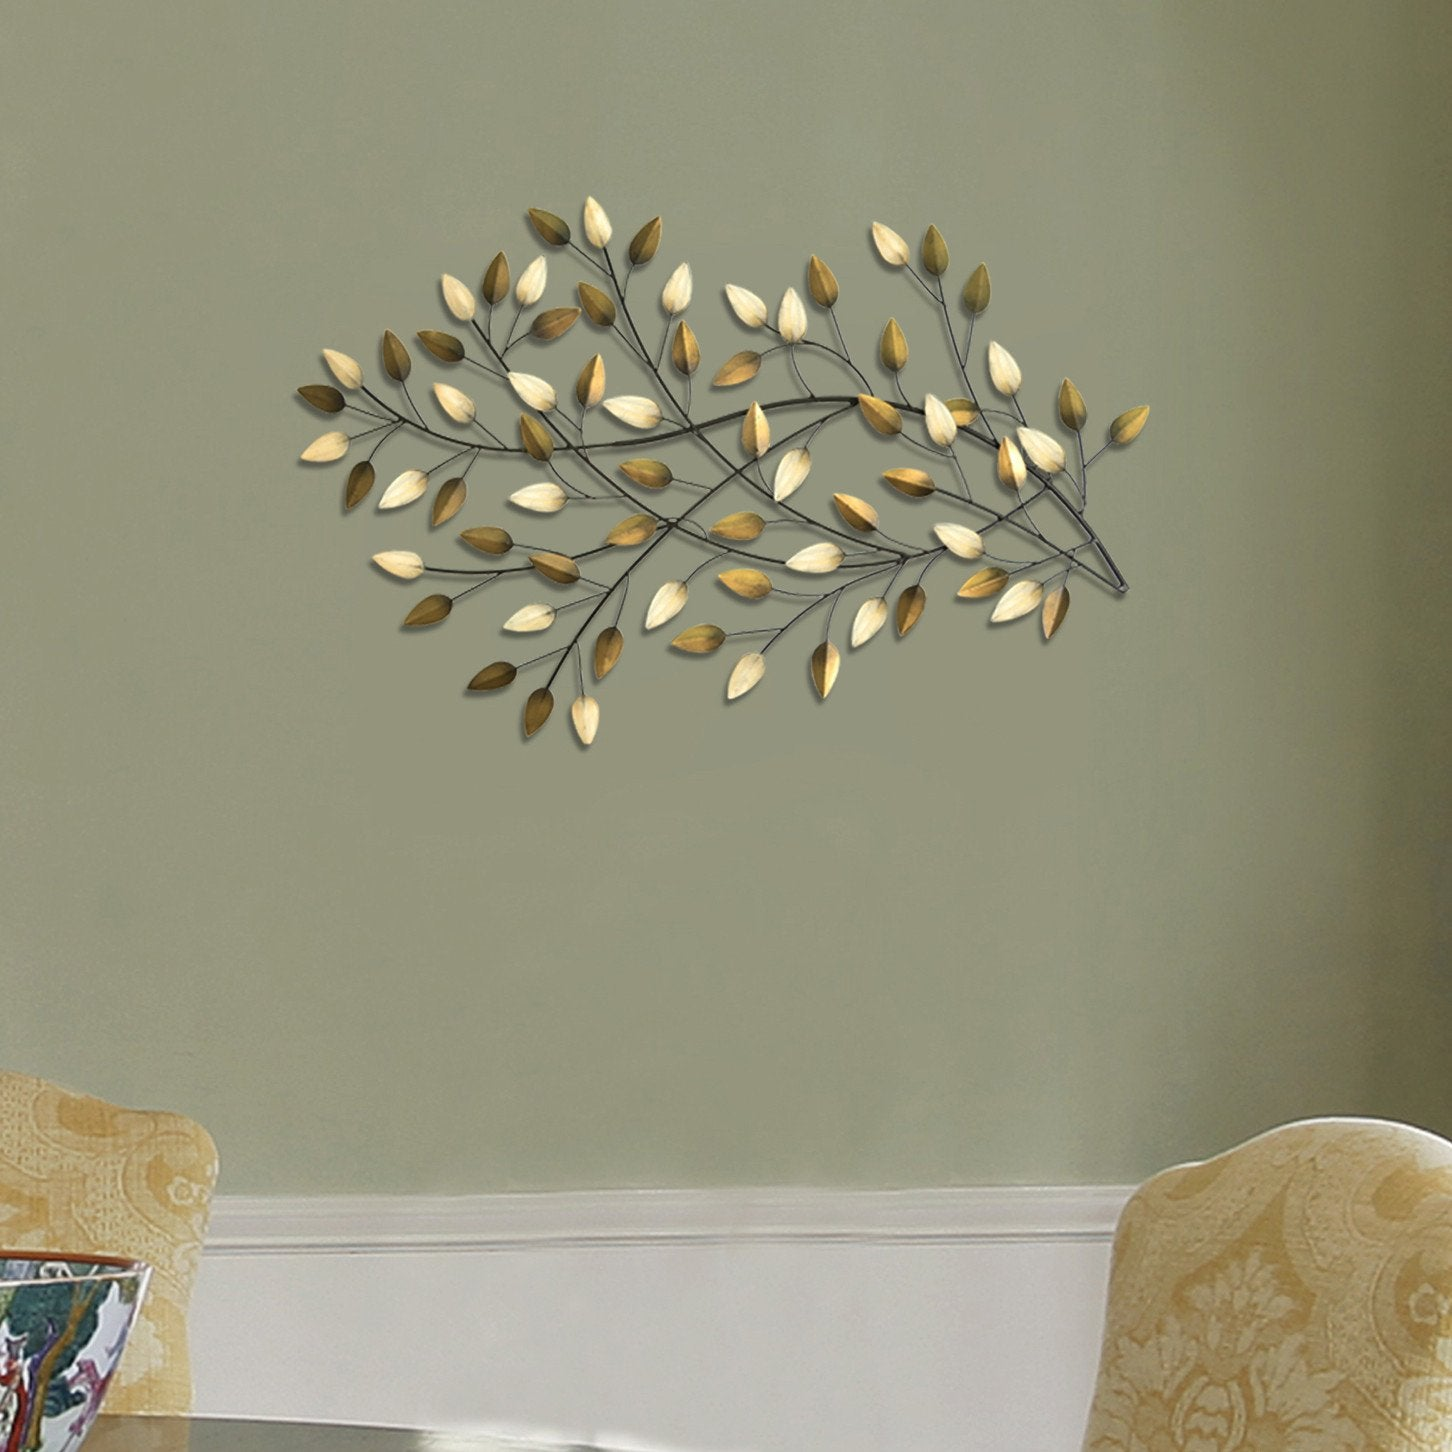 Gold and Beige Metal Blowing Leaves Wall Decor